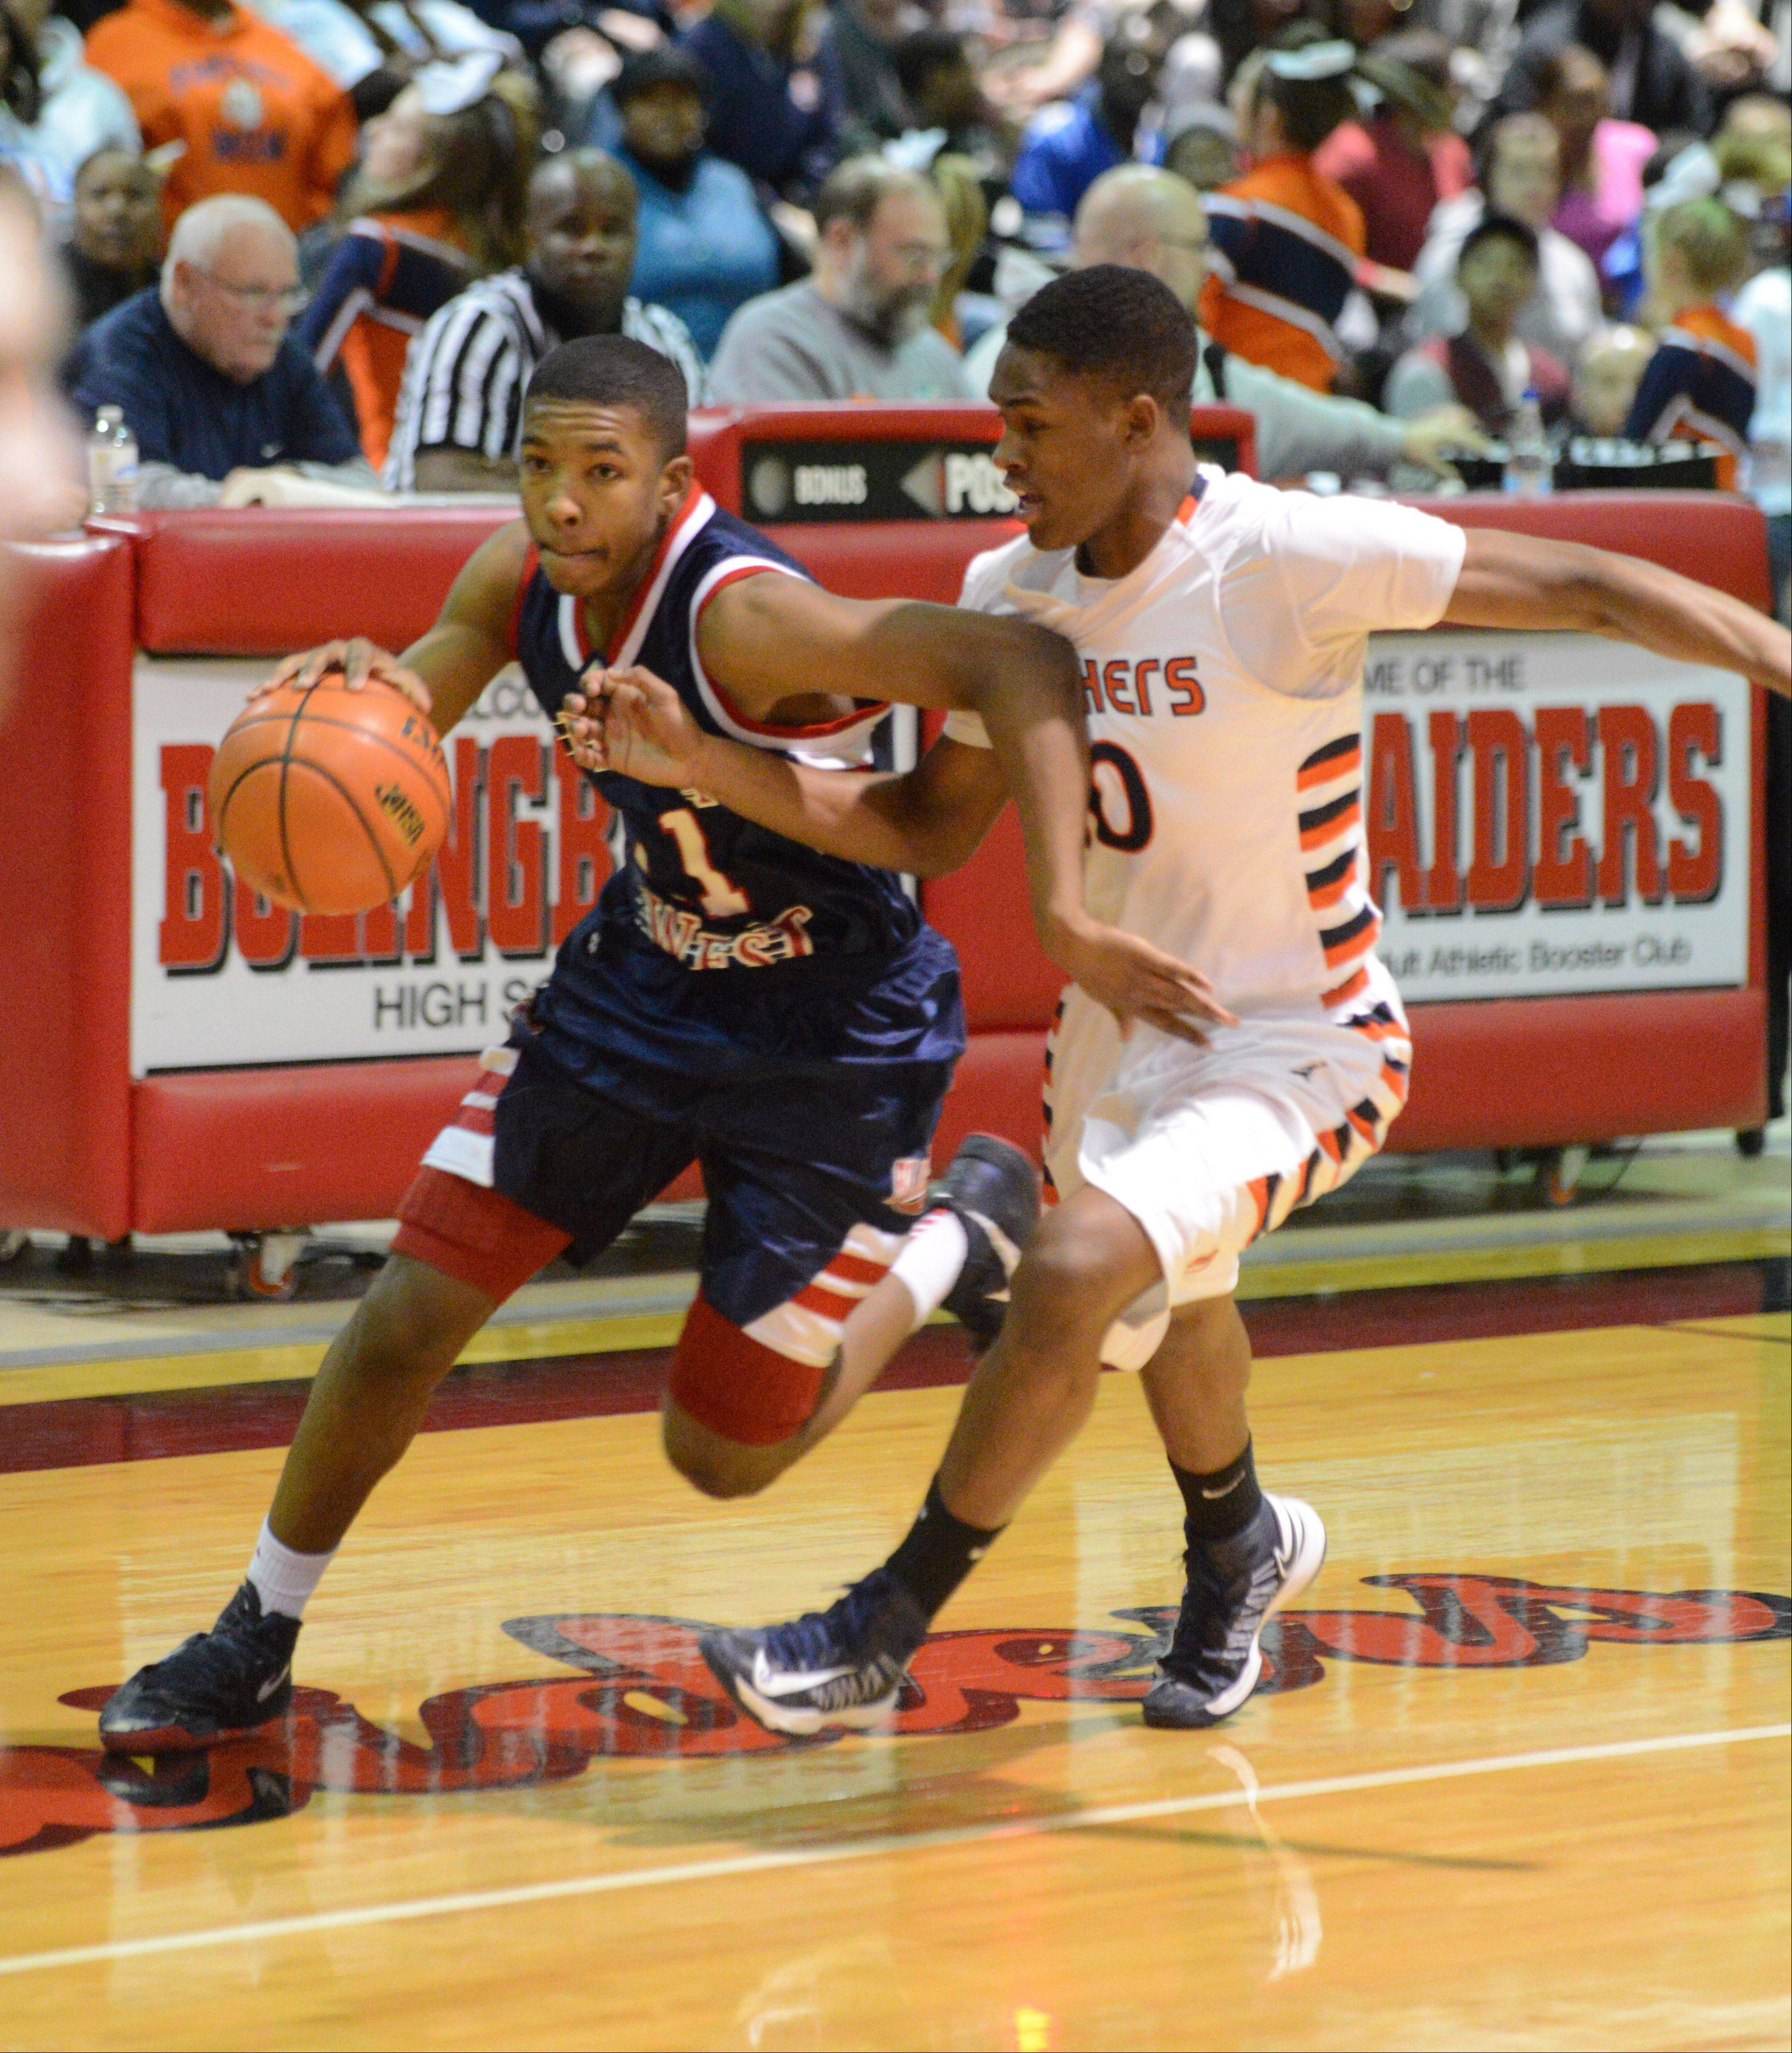 Jontrel Walker of West Aurora moves the ball while Jamaal Richardson of Oswego moves alongside him. This took place during the West Aurora vs. Oswego game at the Bolingbrook sectional semifinals.